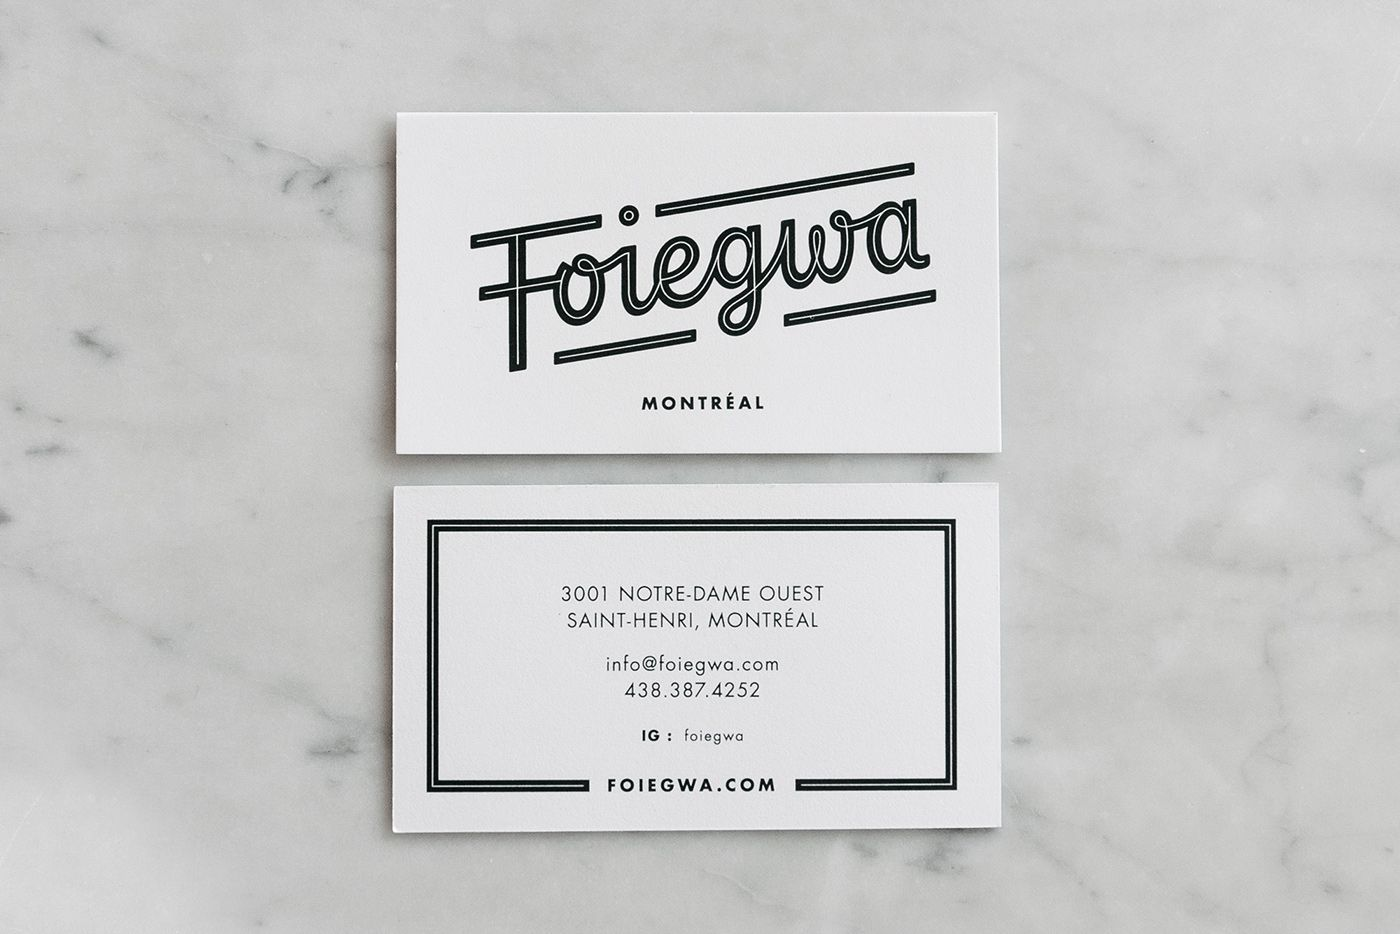 Foiegwa French Diner on Behance | Ban shi | Pinterest | Diners ...